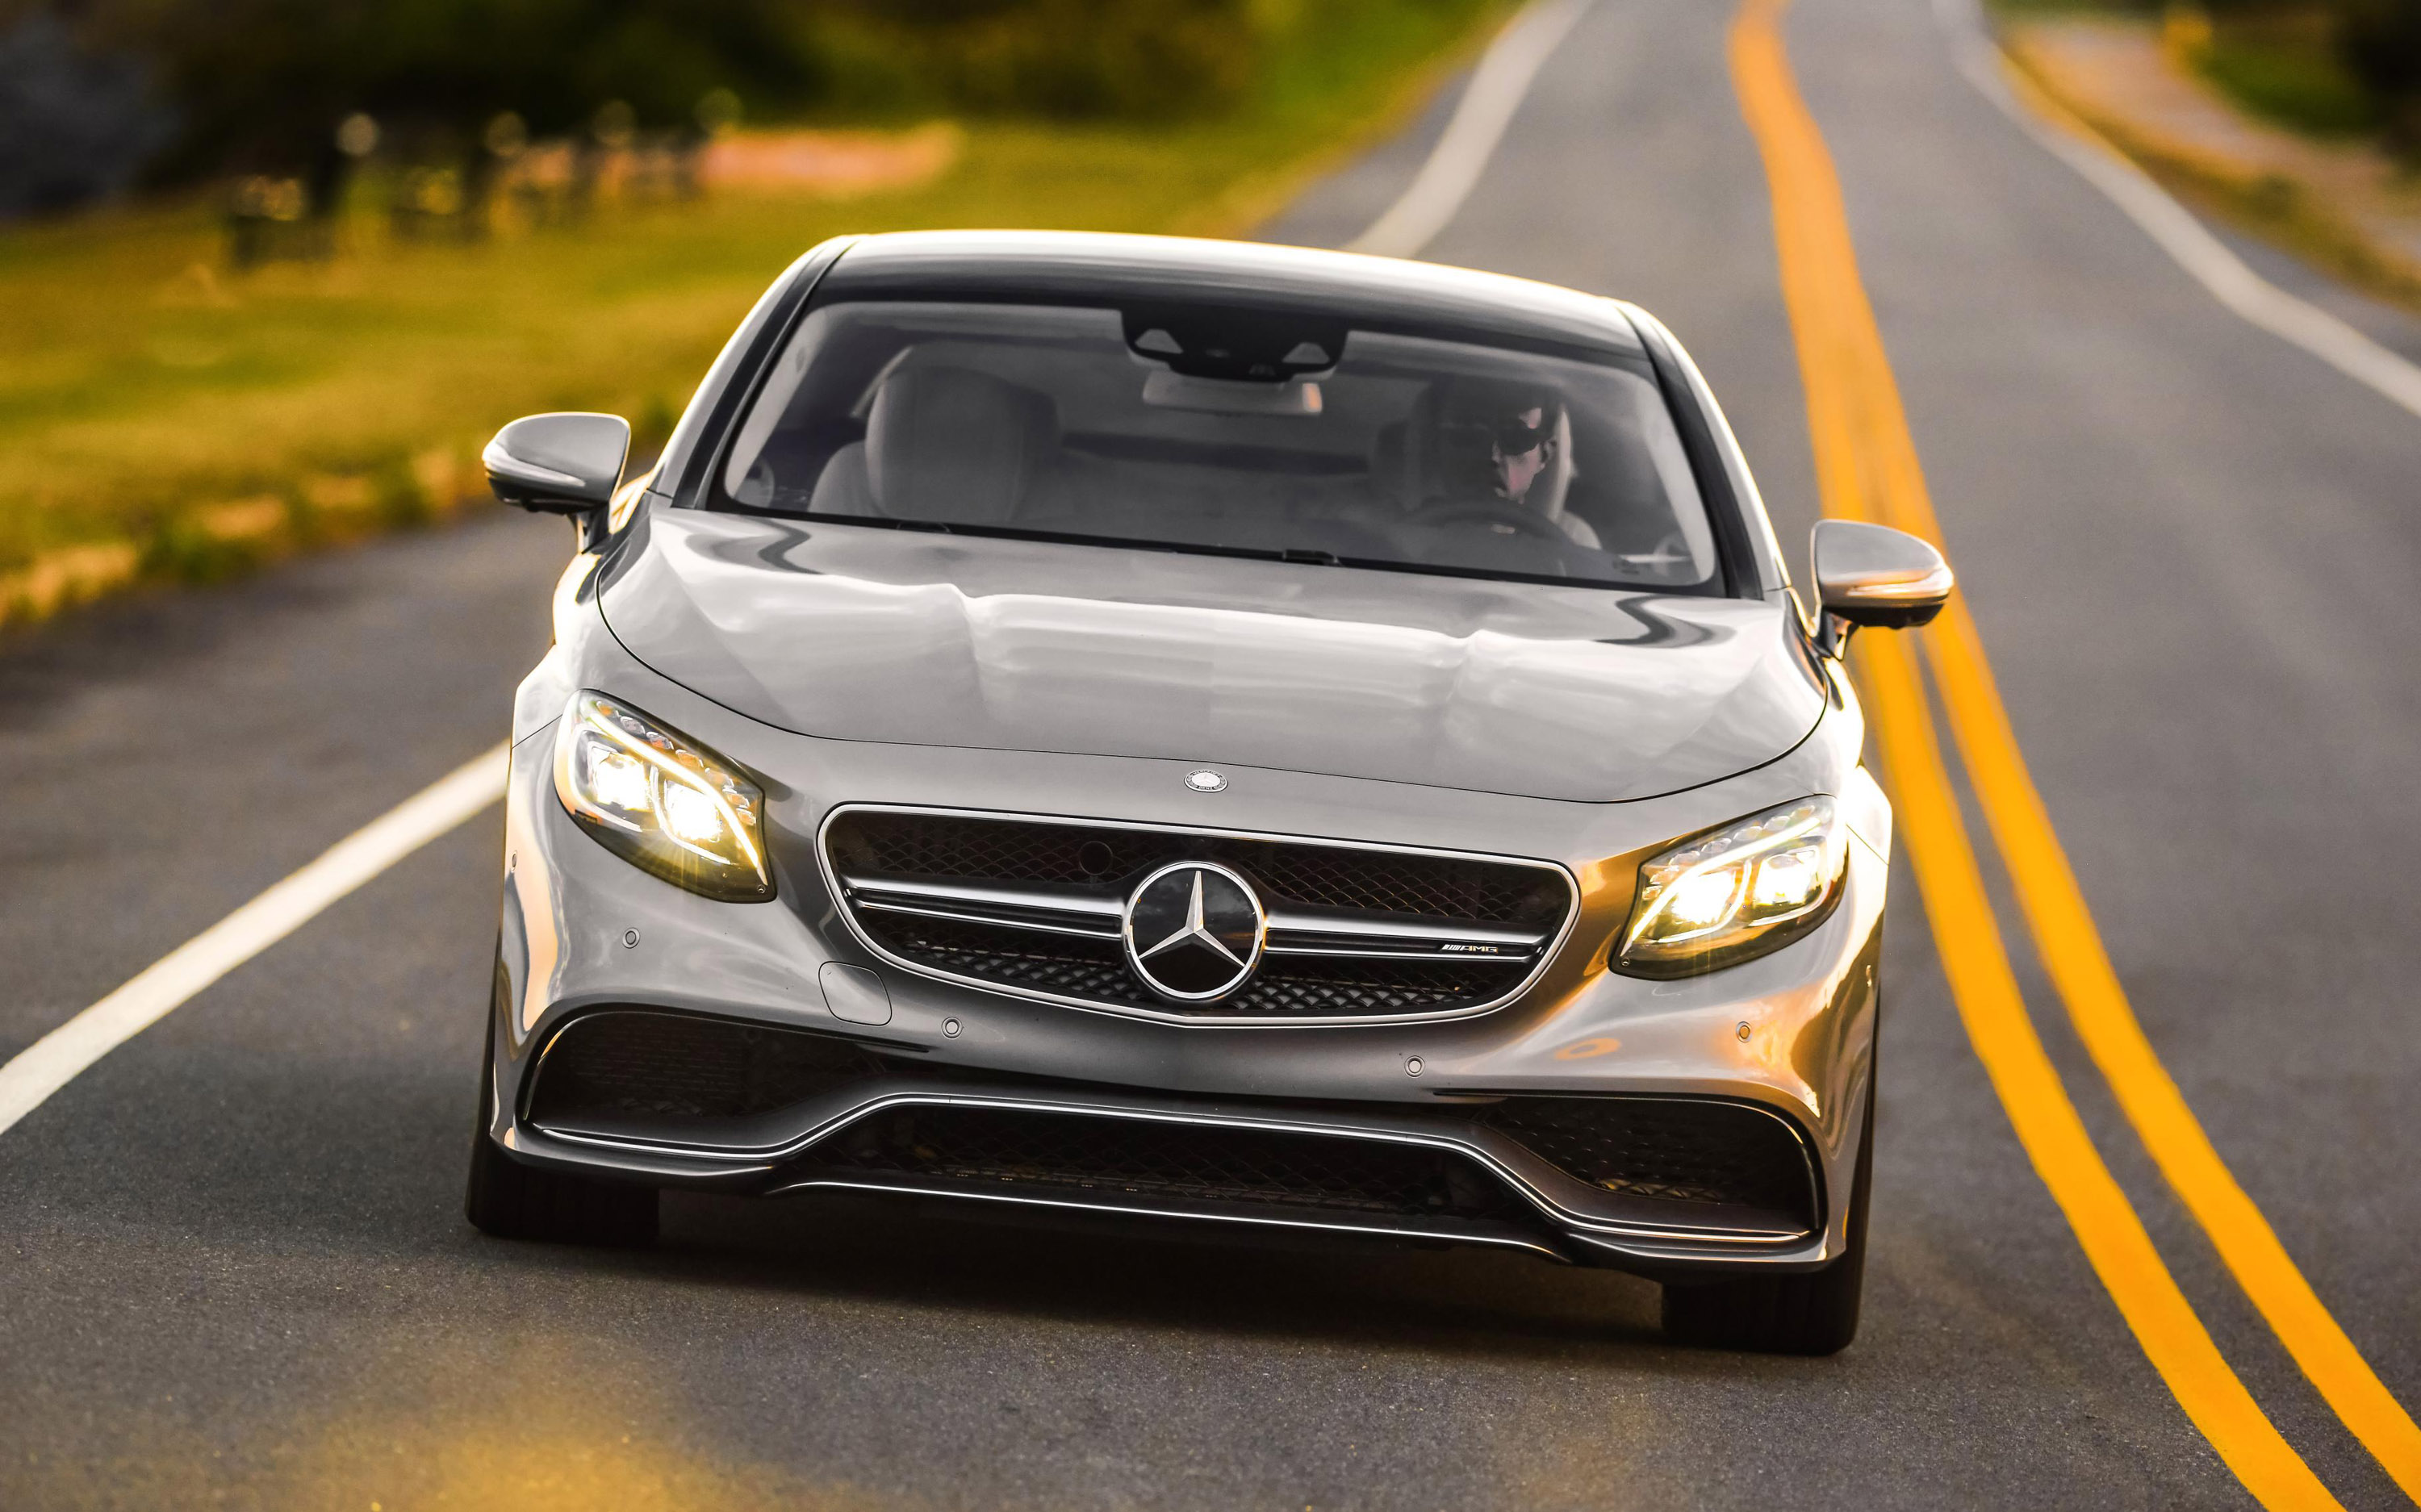 https://www.automobilesreview.com/gallery/2015-mercedes-benz-s63-amg-4matic-coupe/2015-mercedes-benz-s63-amg-01.jpg